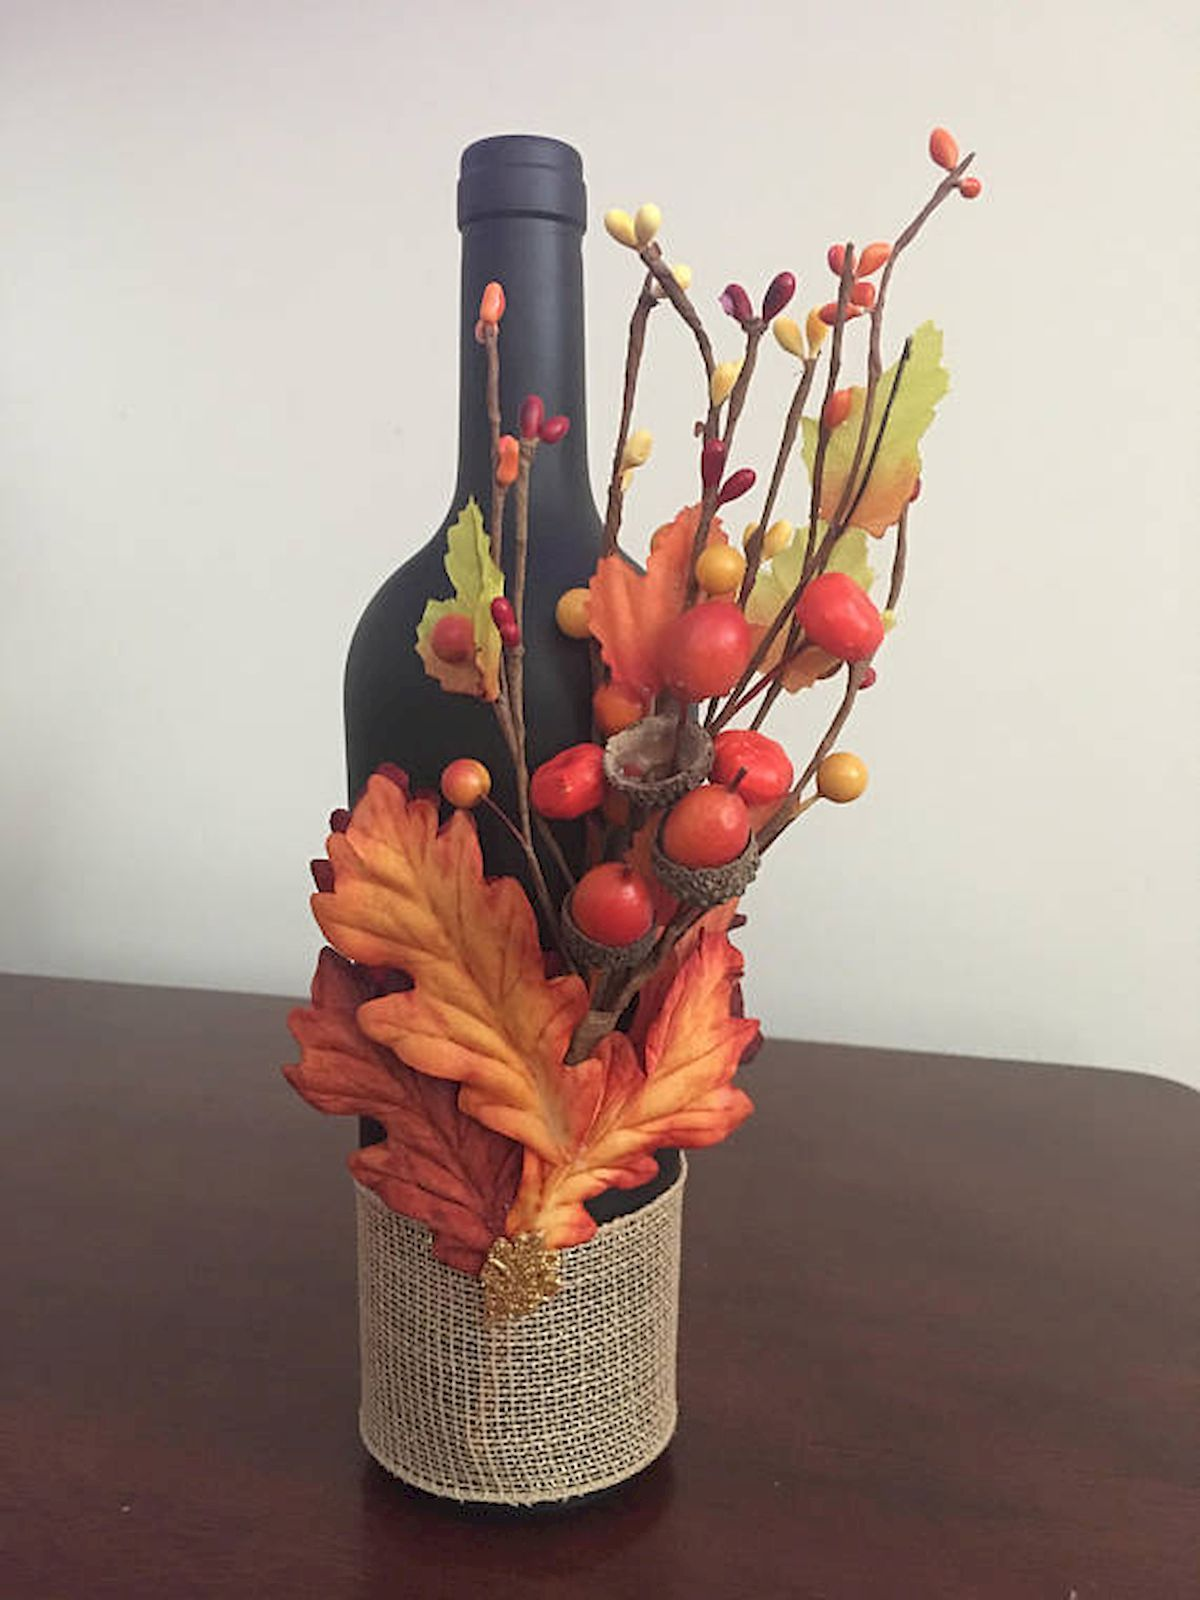 Awesome Diy Empty Wine Bottles For Thanksgiving Or Decorations Https Hajarfresh Com Diy Empty Wine B Fall Wine Bottles Wine Bottle Centerpieces Bottle Crafts